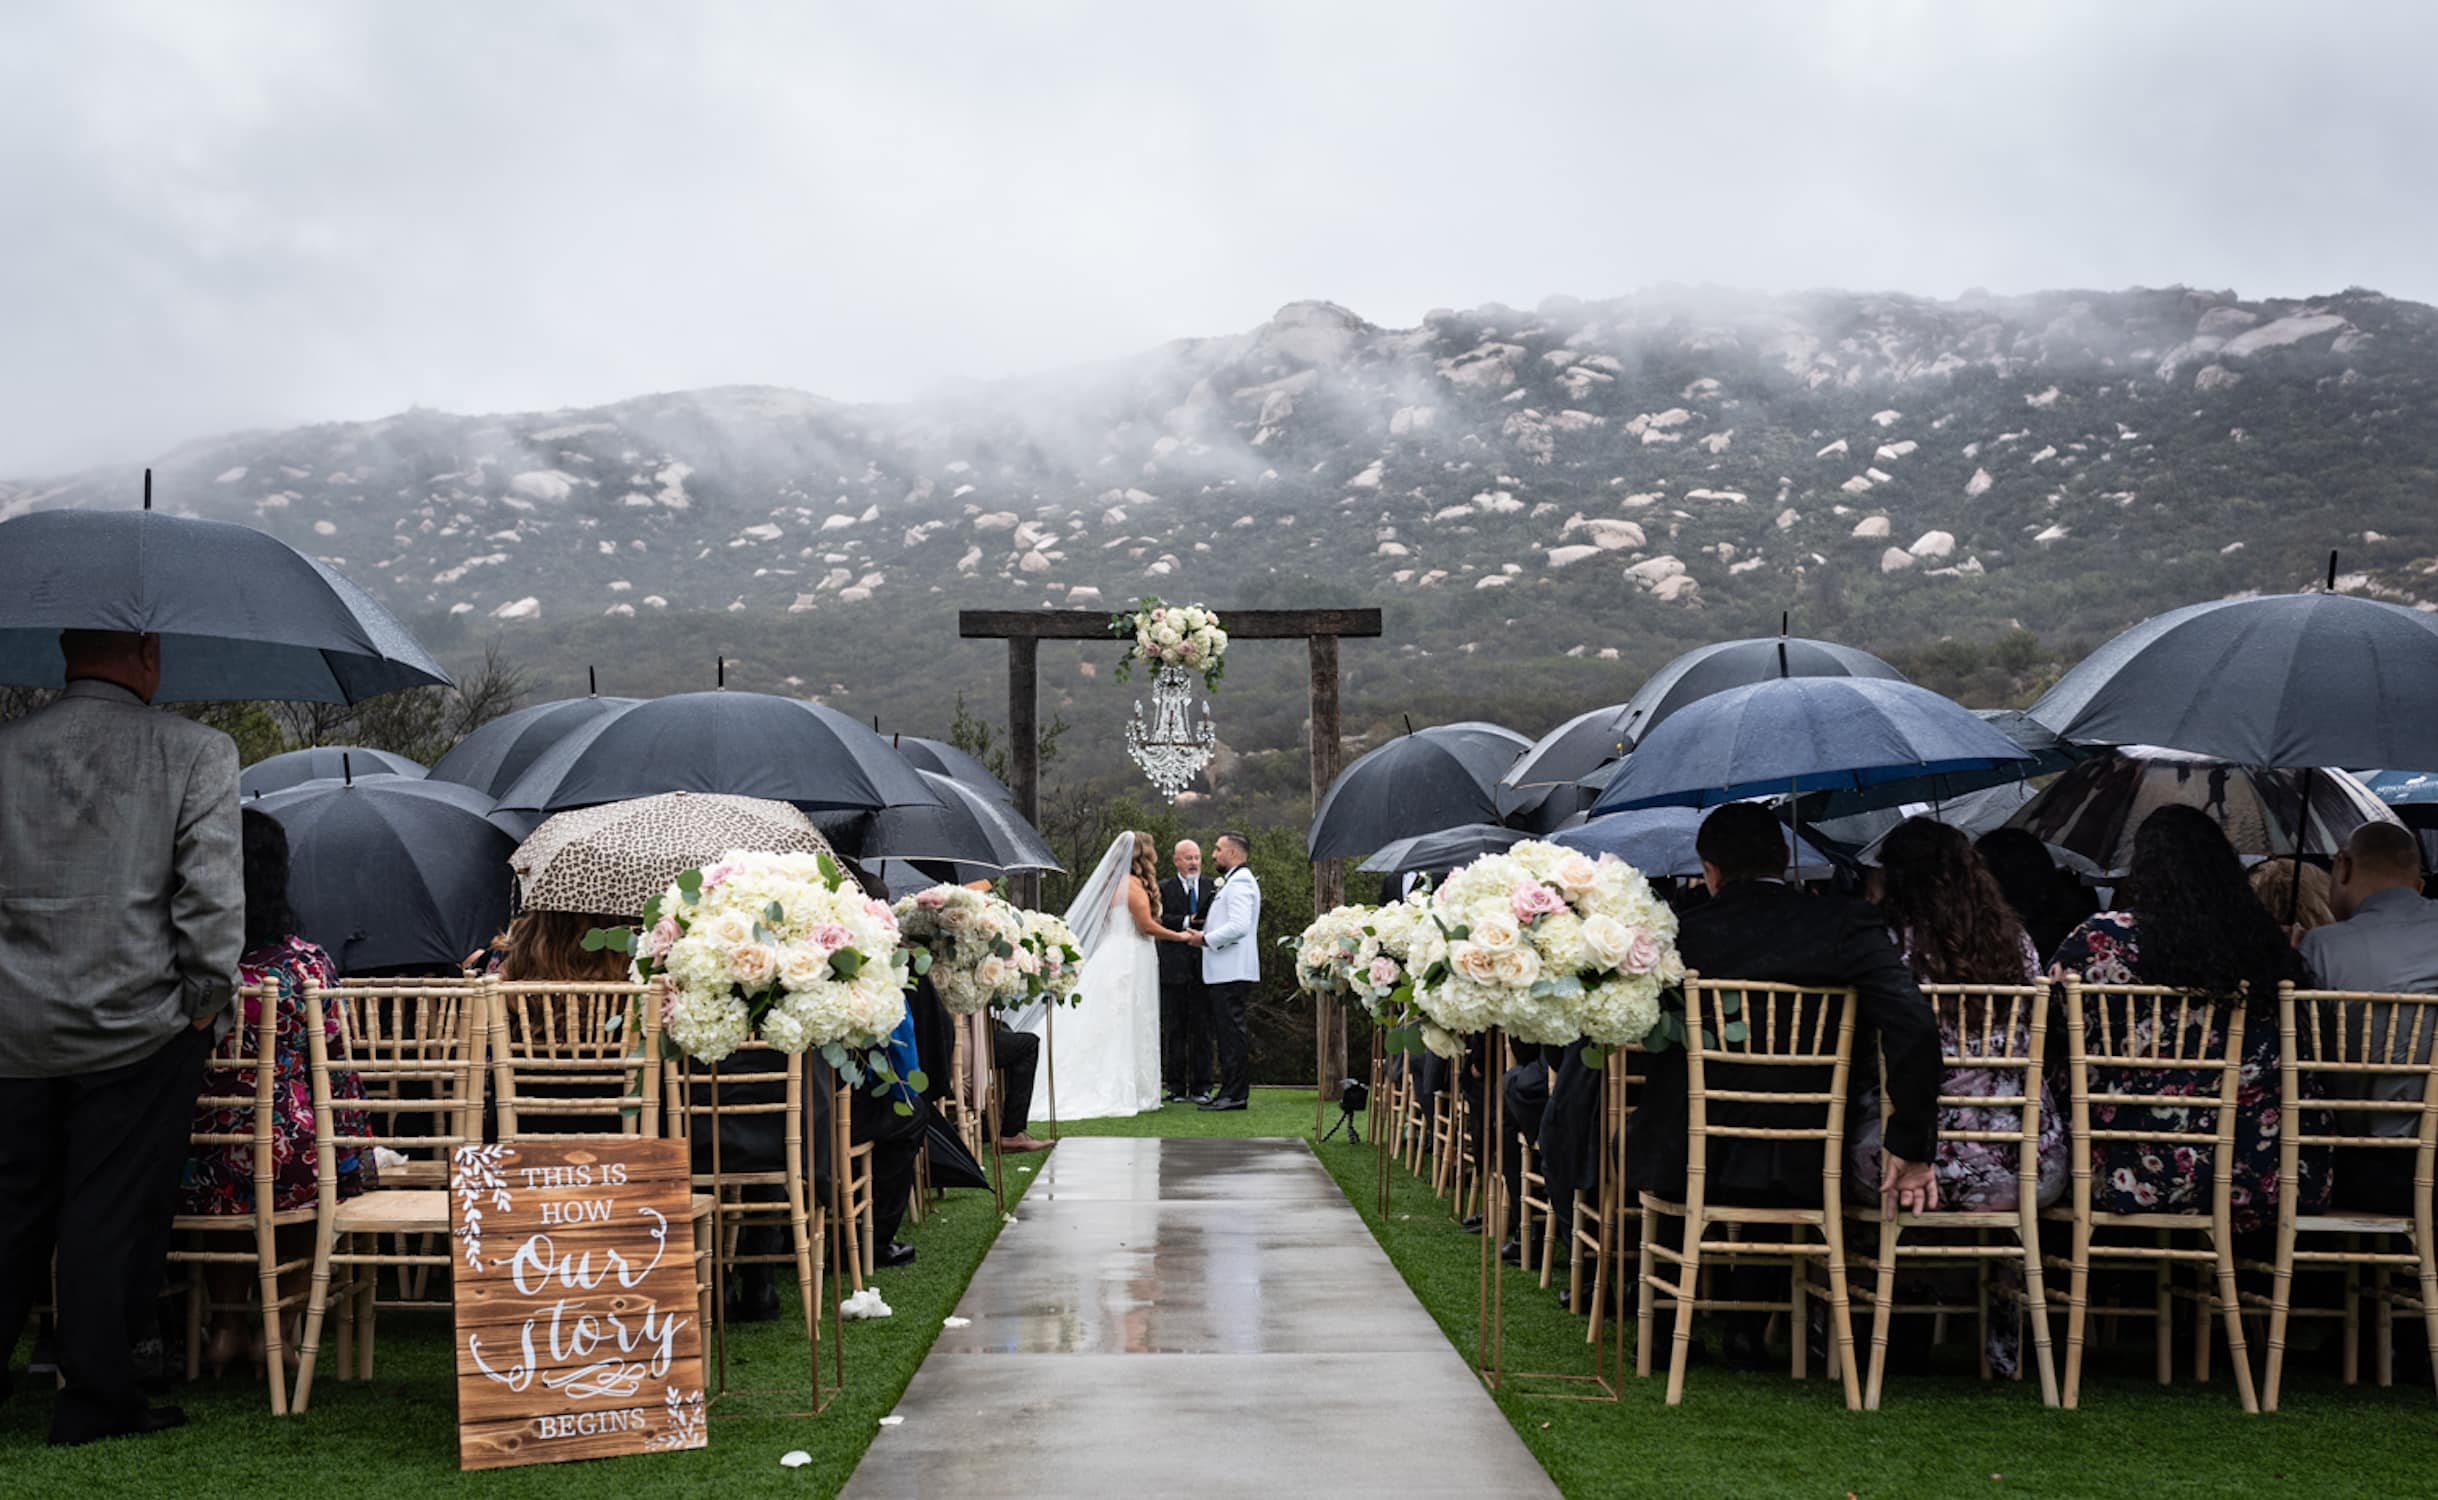 Rainy wedding ceremony in Temecula, California.